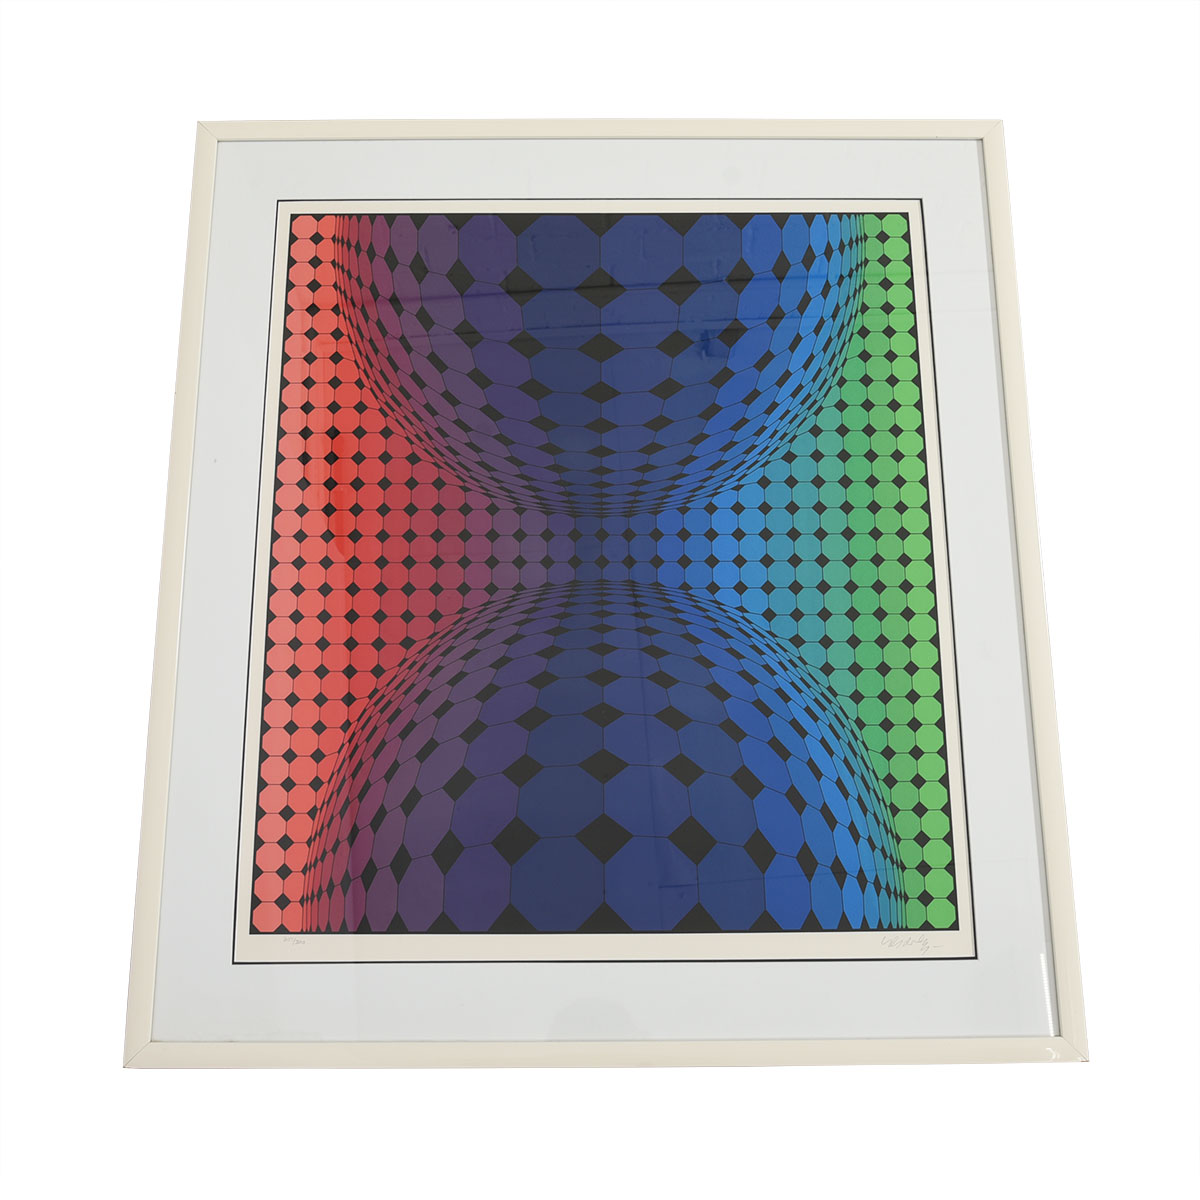 Victor Vasarely – Vintage Limited Edition Op Art Serigraph